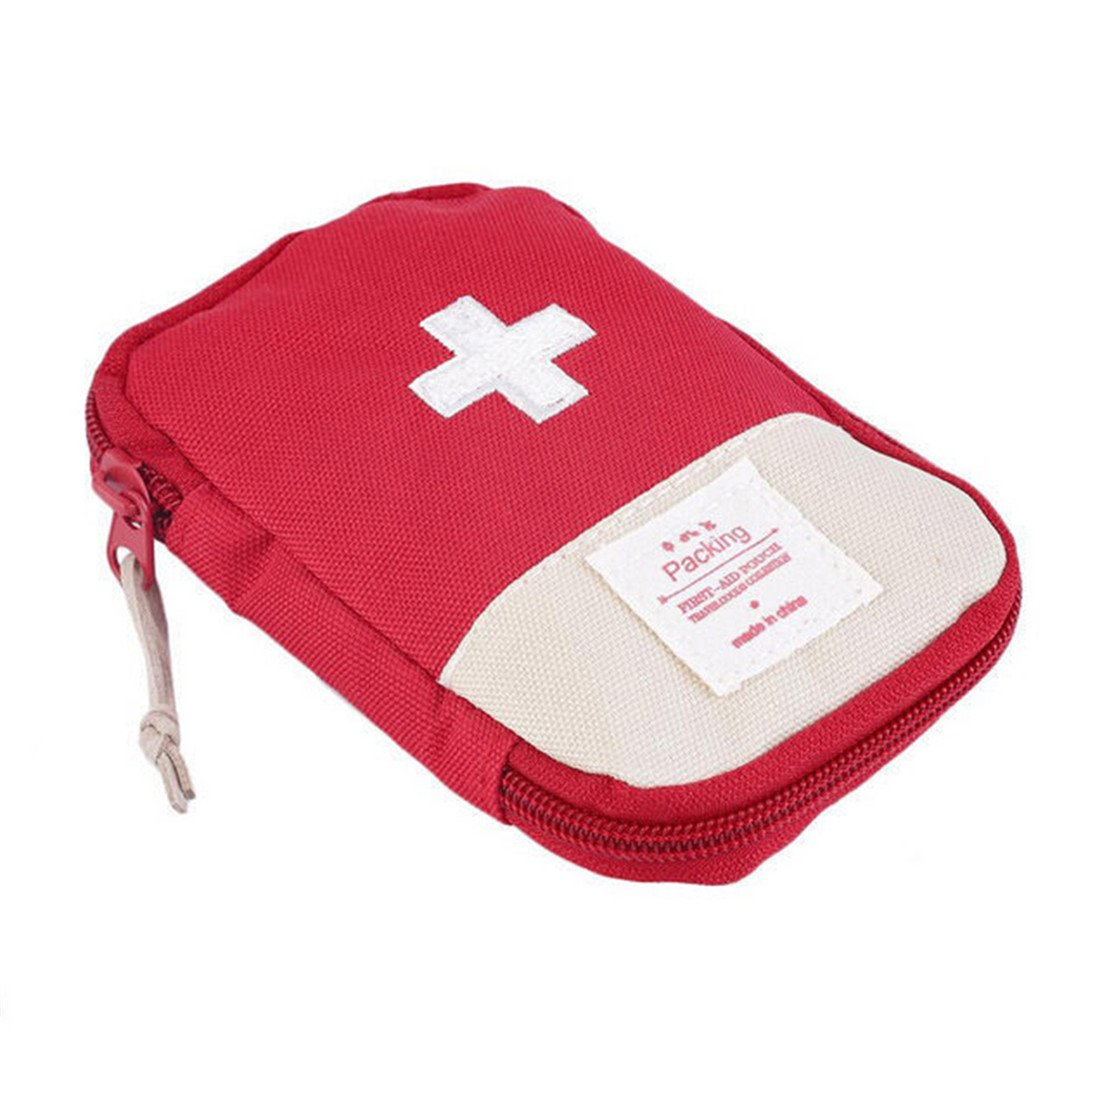 Finance Plan Mini Outdoor Camping Travel Response Case Portable First Aid Kit Bag Pill Pouch (Red)